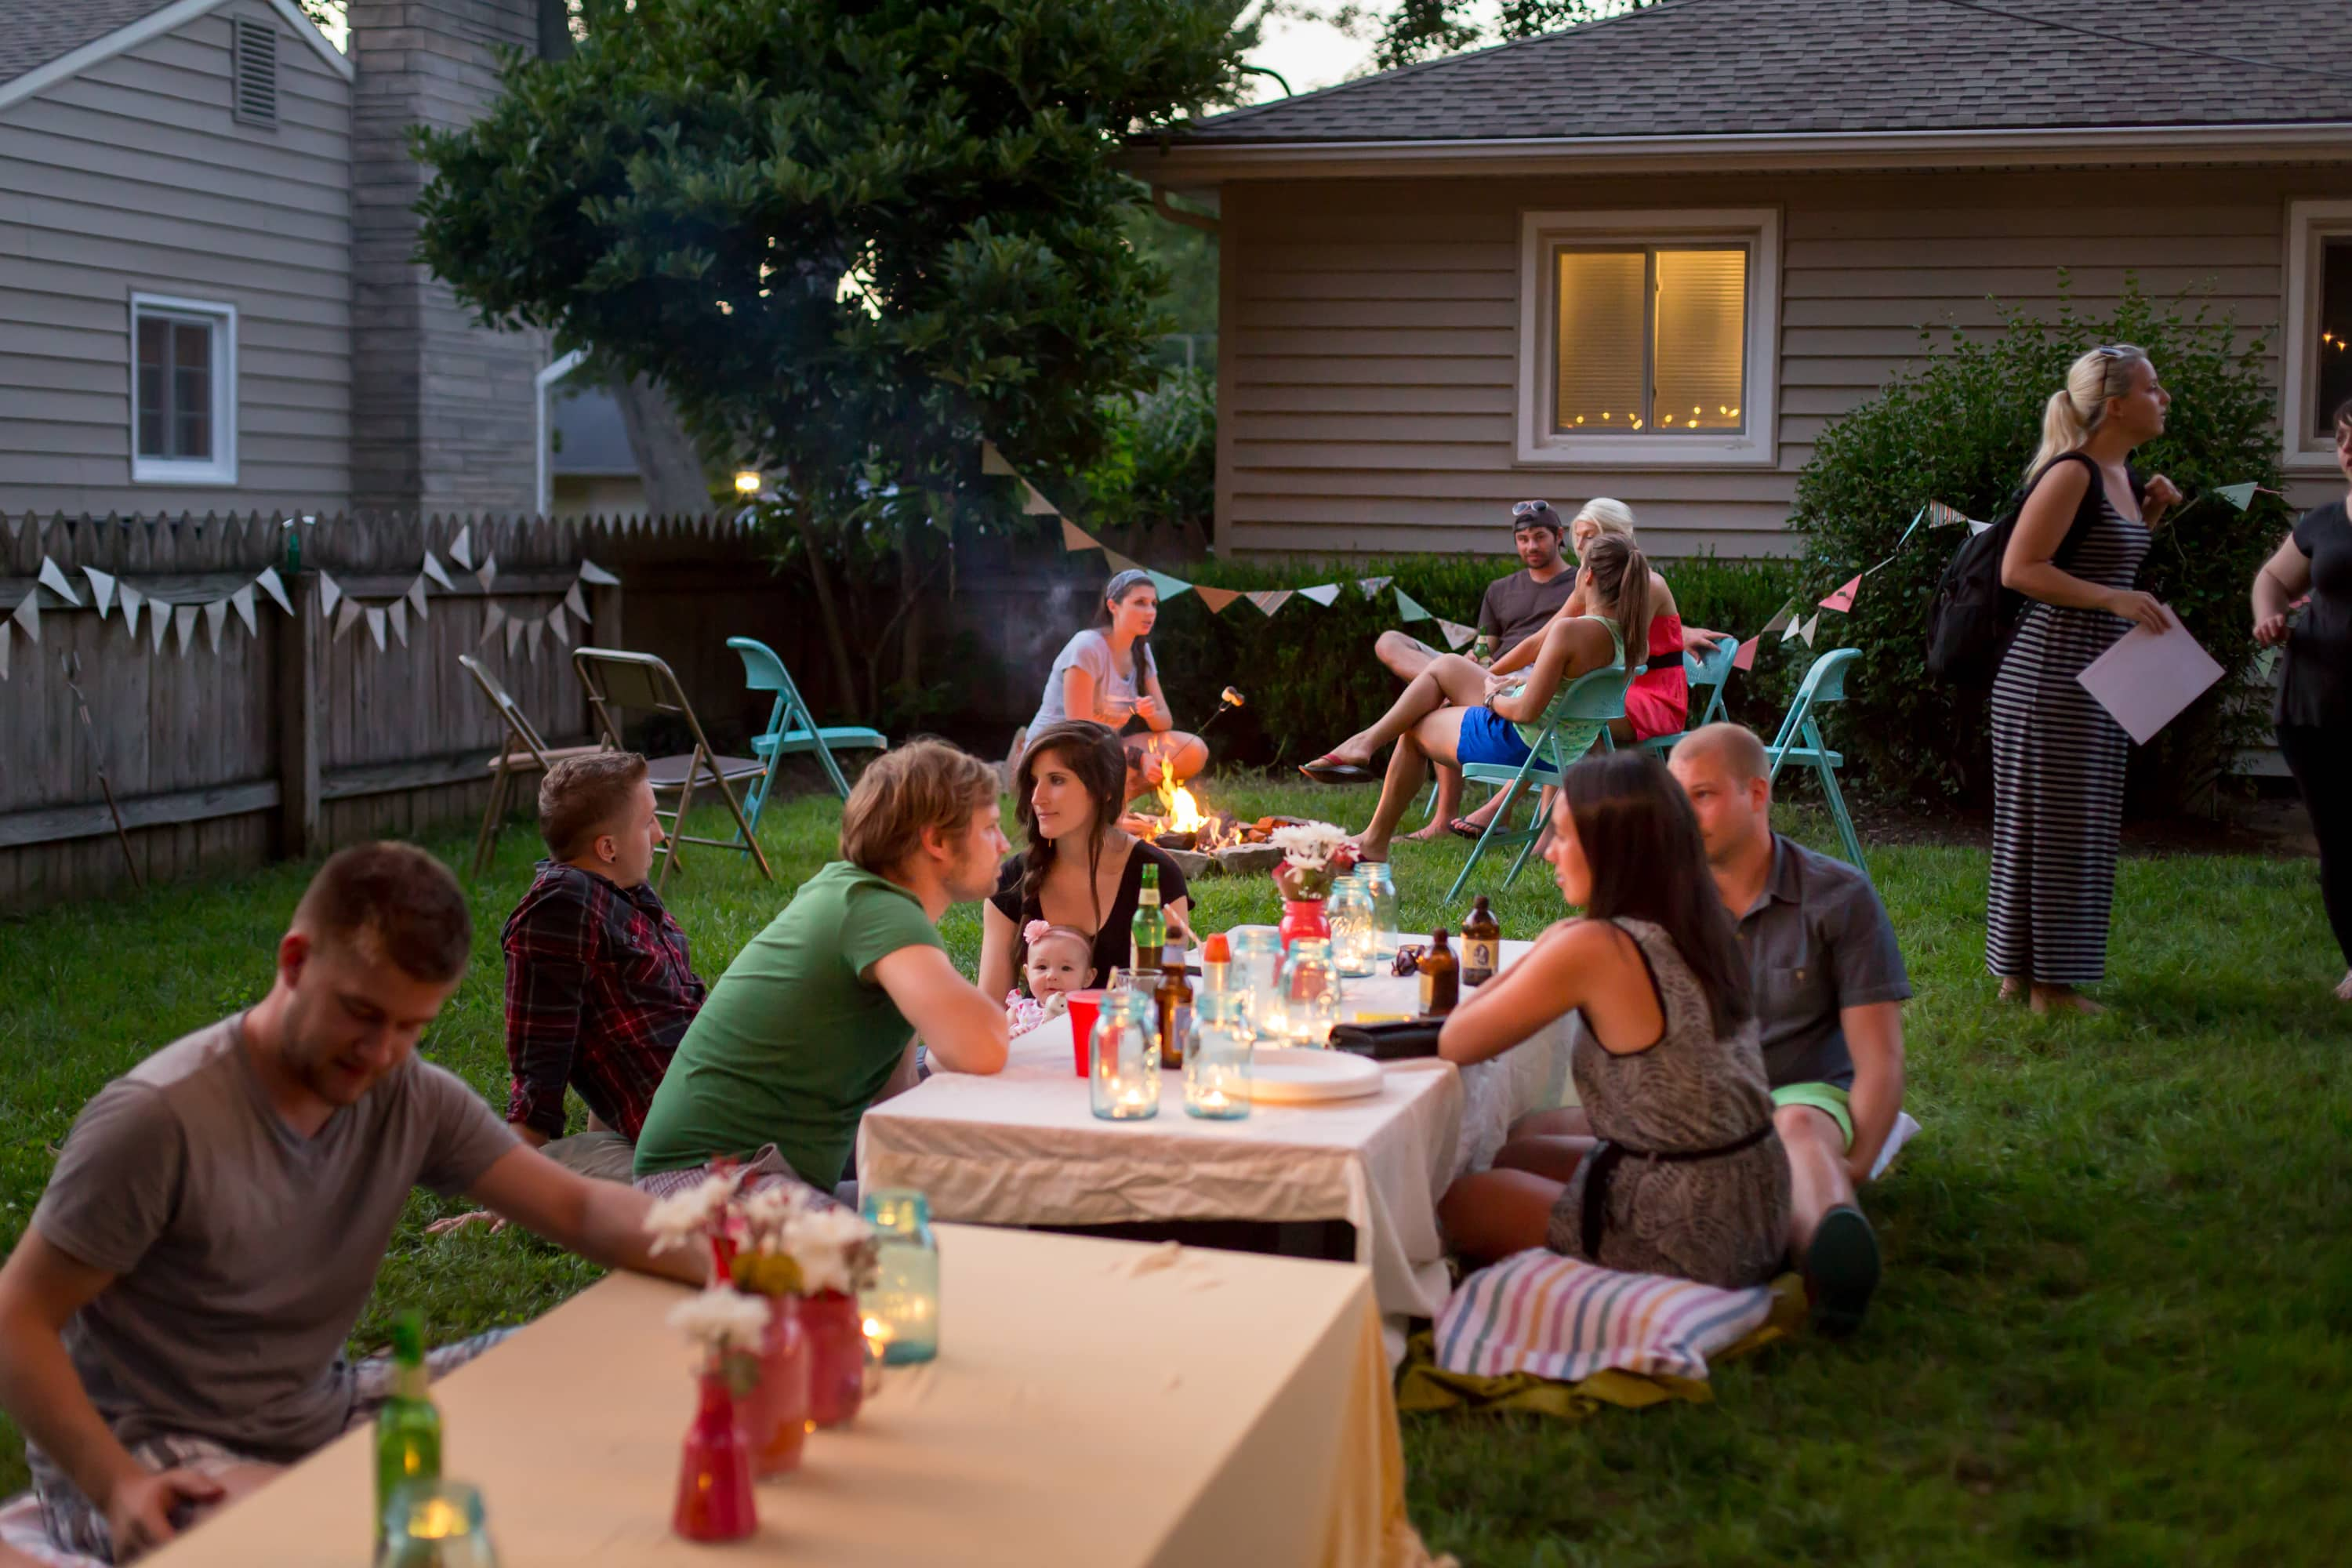 A Backyard S'mores Party: gallery image 33